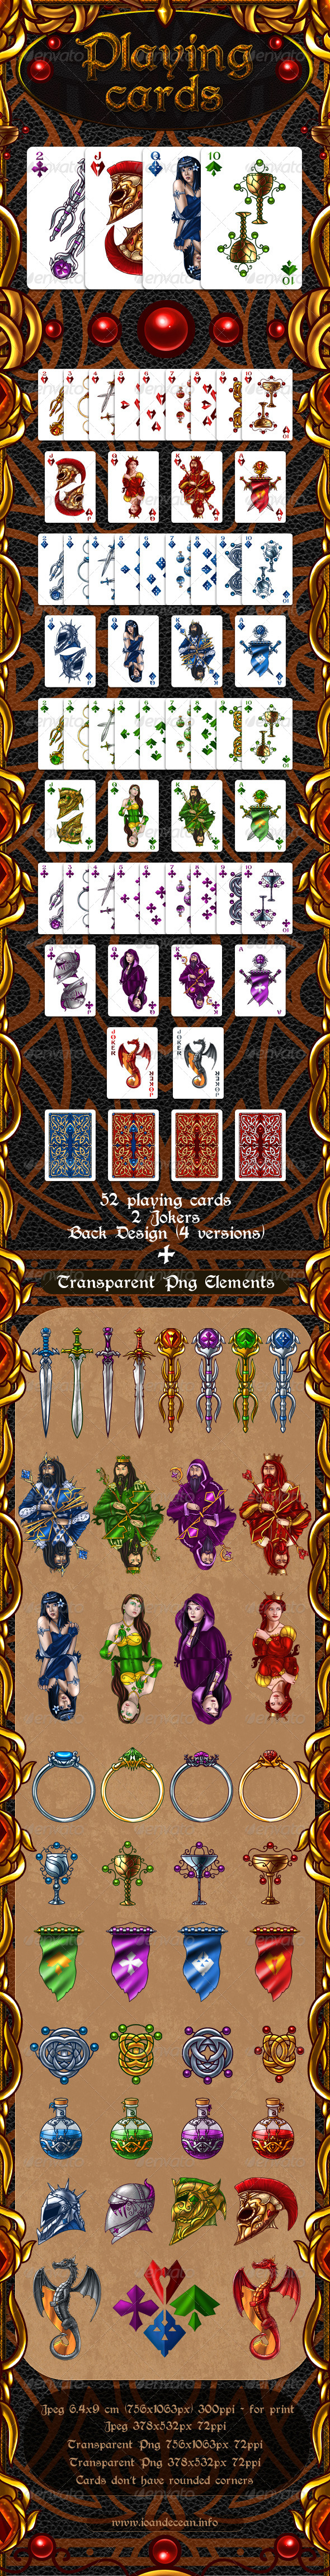 Full Deck of Fantasy Playing Cards  - Sprites Game Assets